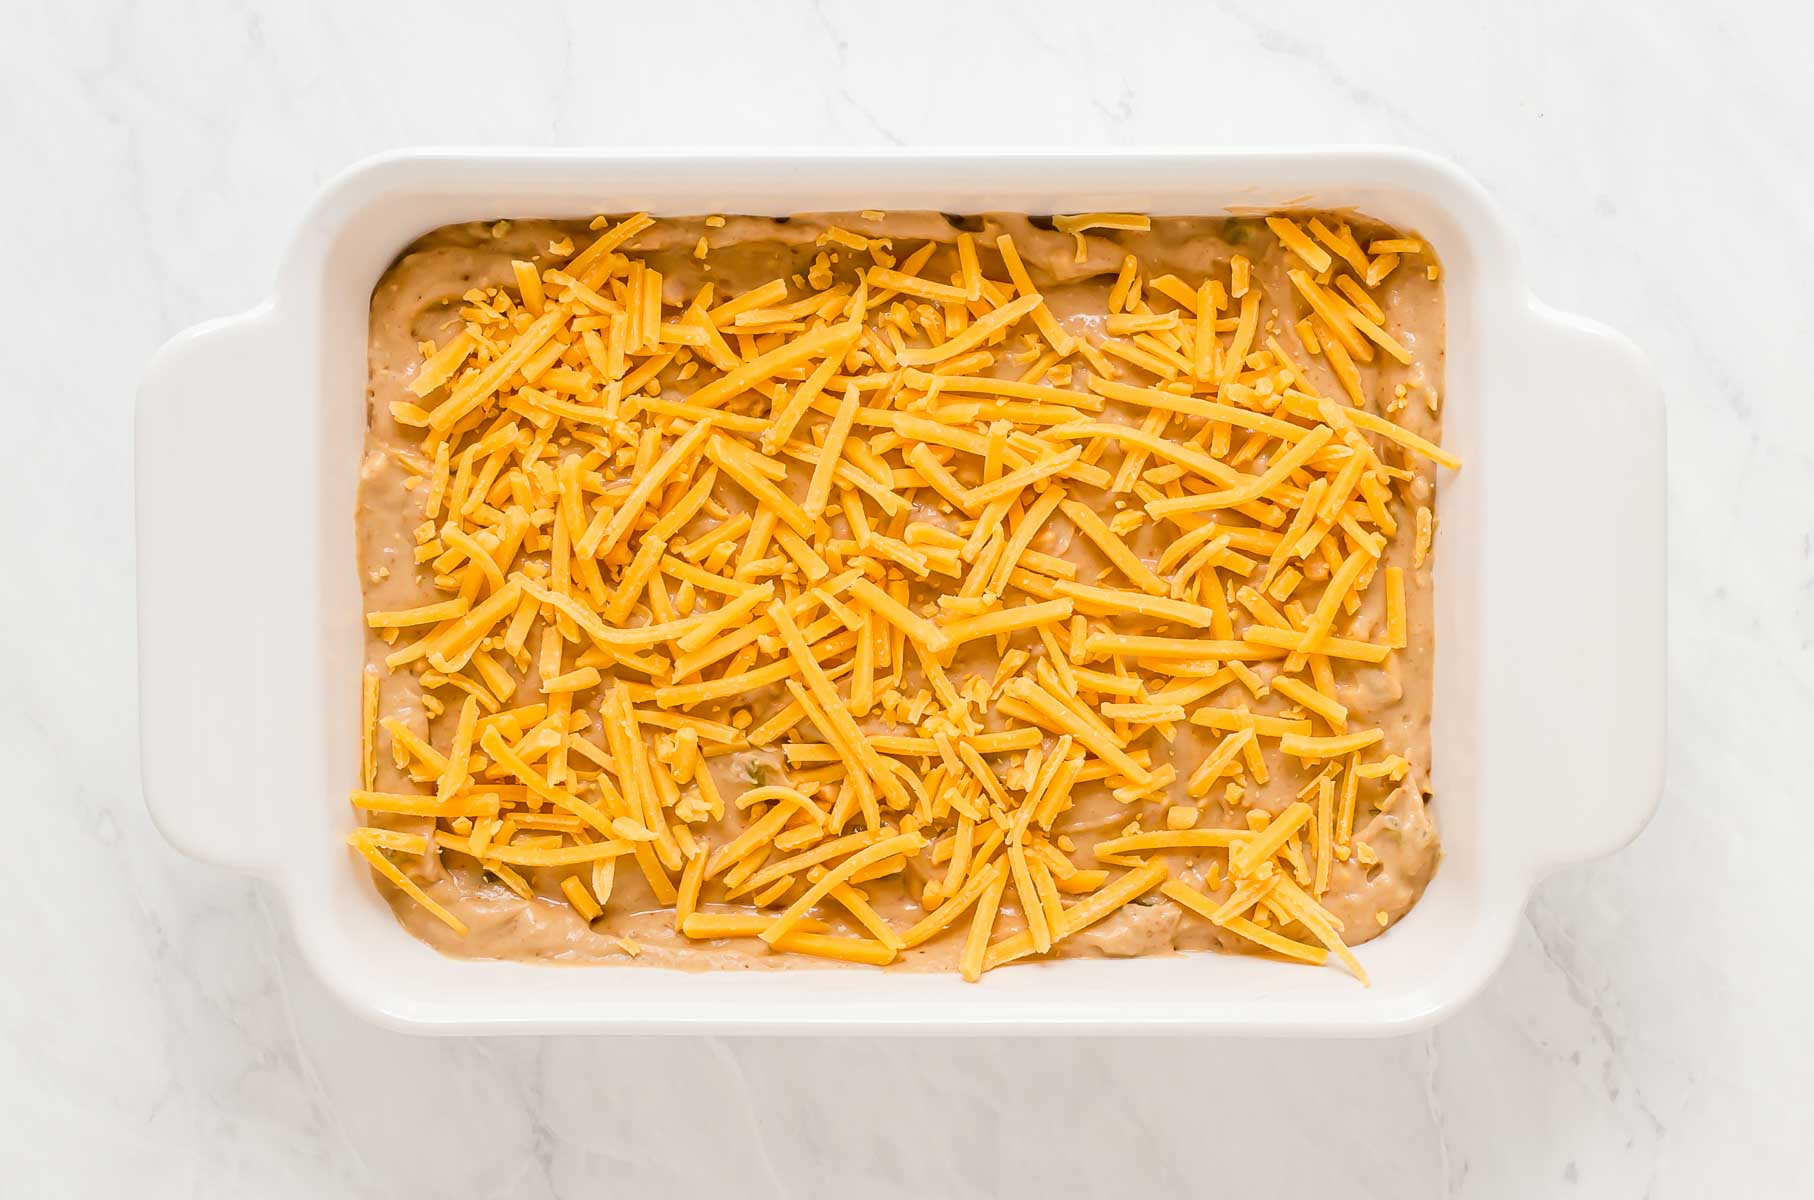 Bean dip with shredded cheddar on top, before going in the oven.